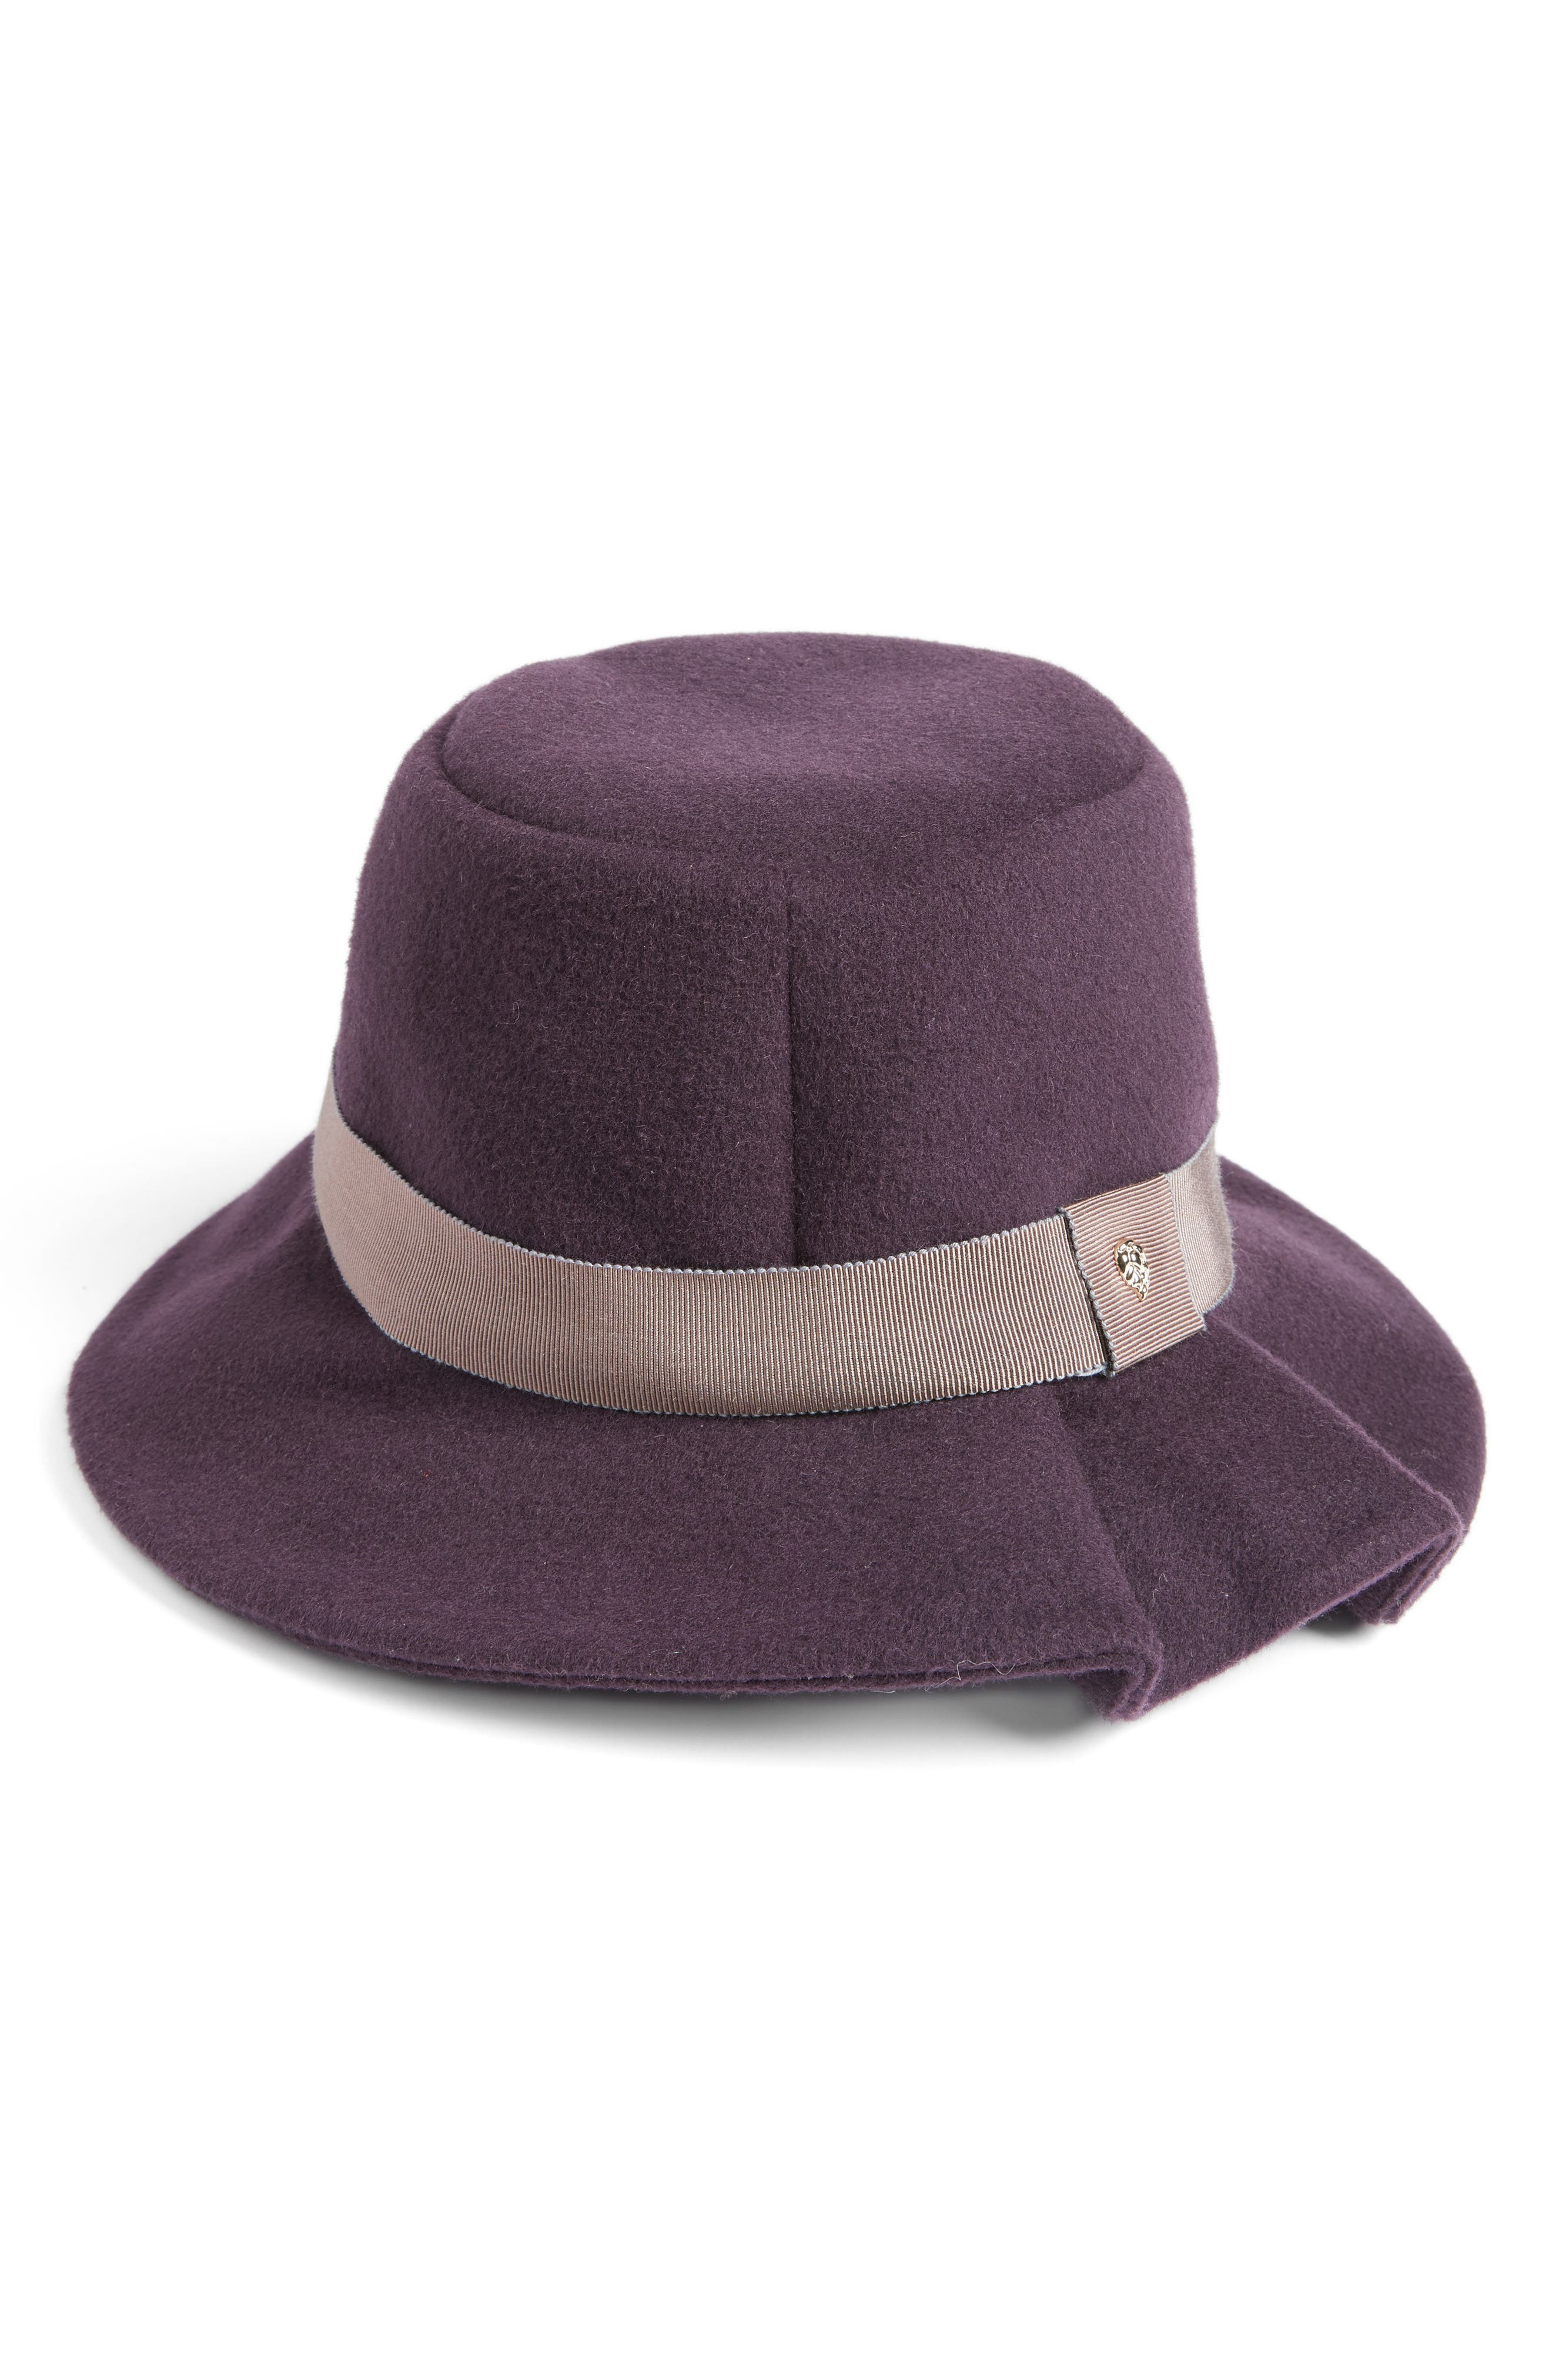 Luxe Tapered Bucket Hat,                             Main thumbnail 1, color,                             900